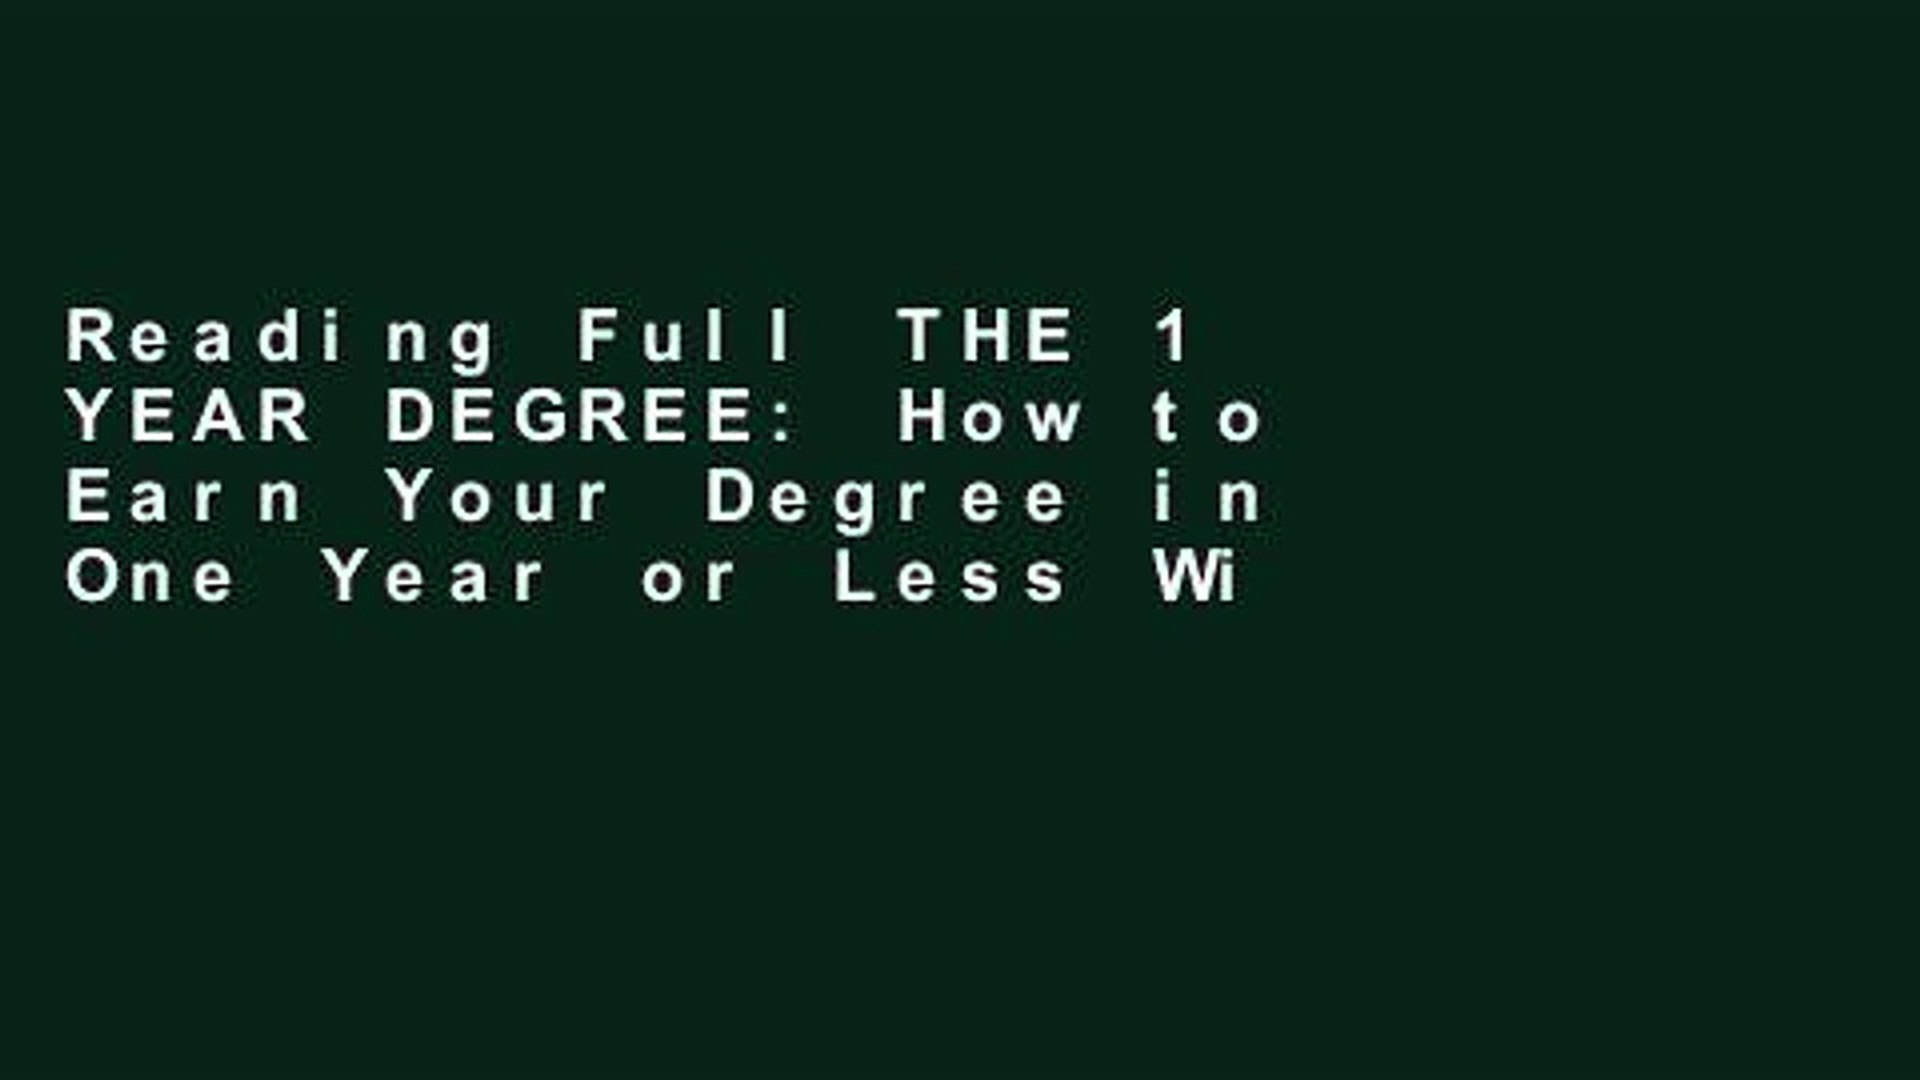 Reading Full THE 1 YEAR DEGREE: How to Earn Your Degree in One Year or Less Without Debt Unlimited